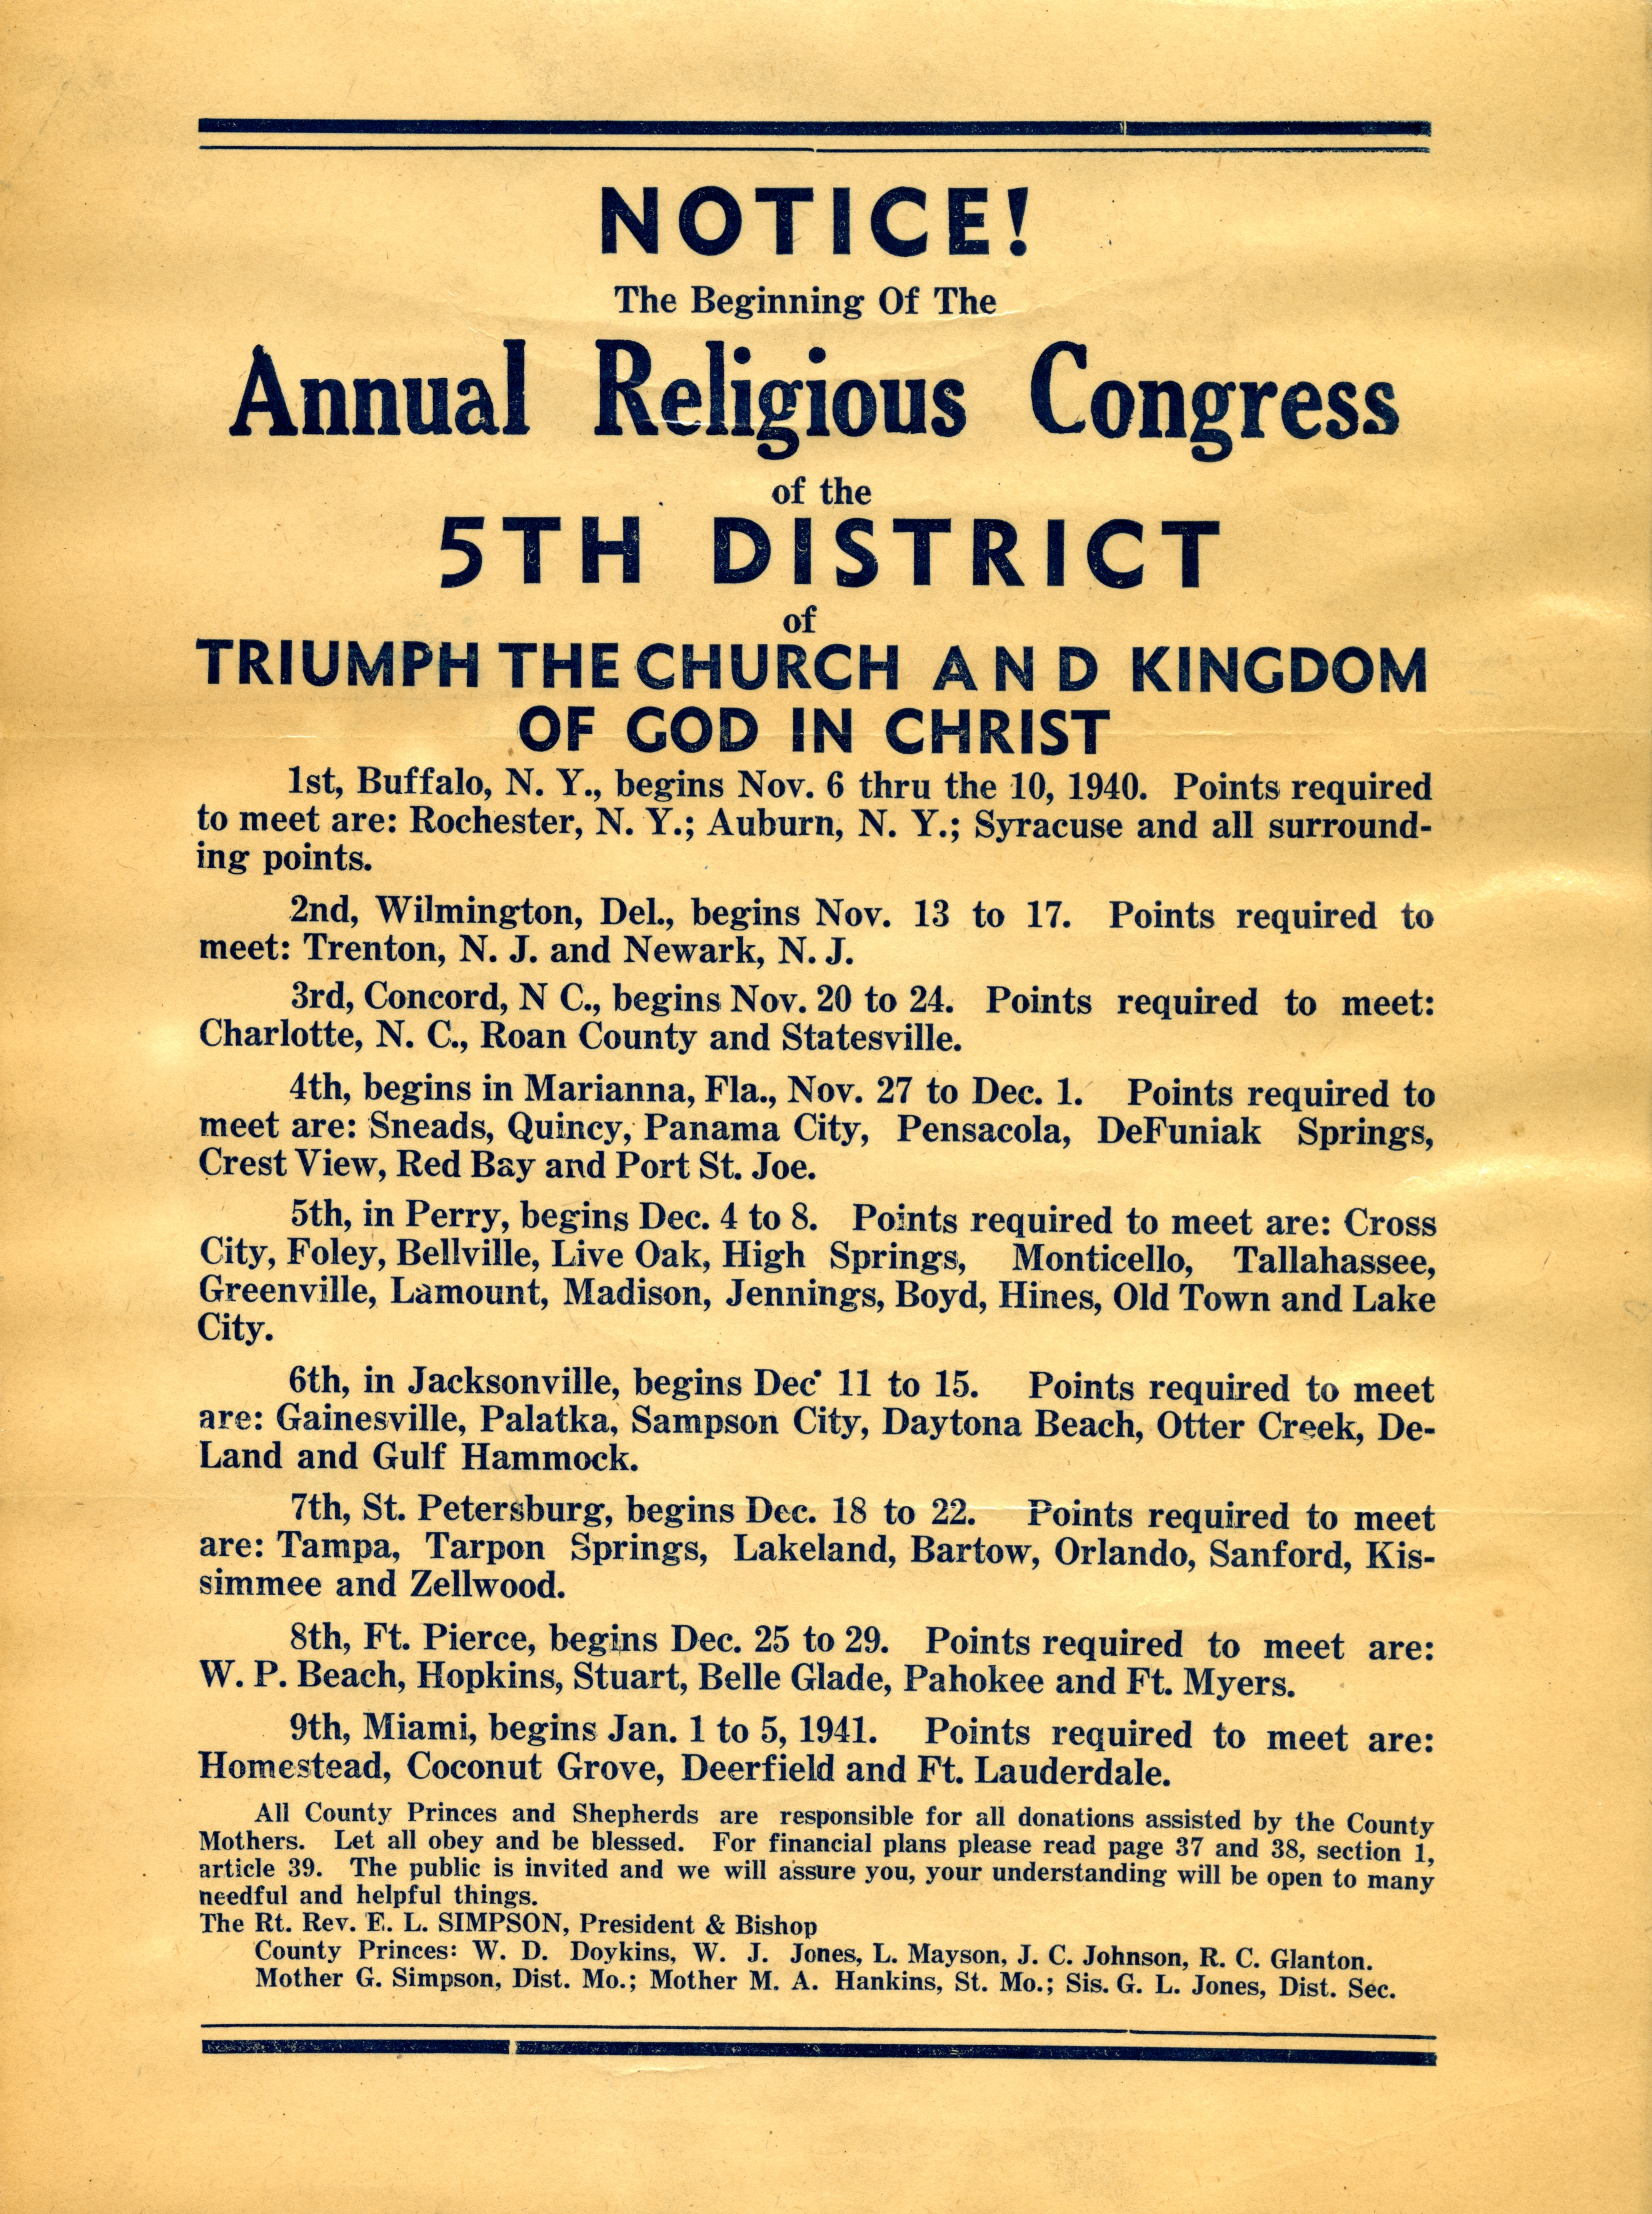 Notice, the beginning of the annual religious congress of the 5th District of Triumph the Church and Kingdom of God in Christ.